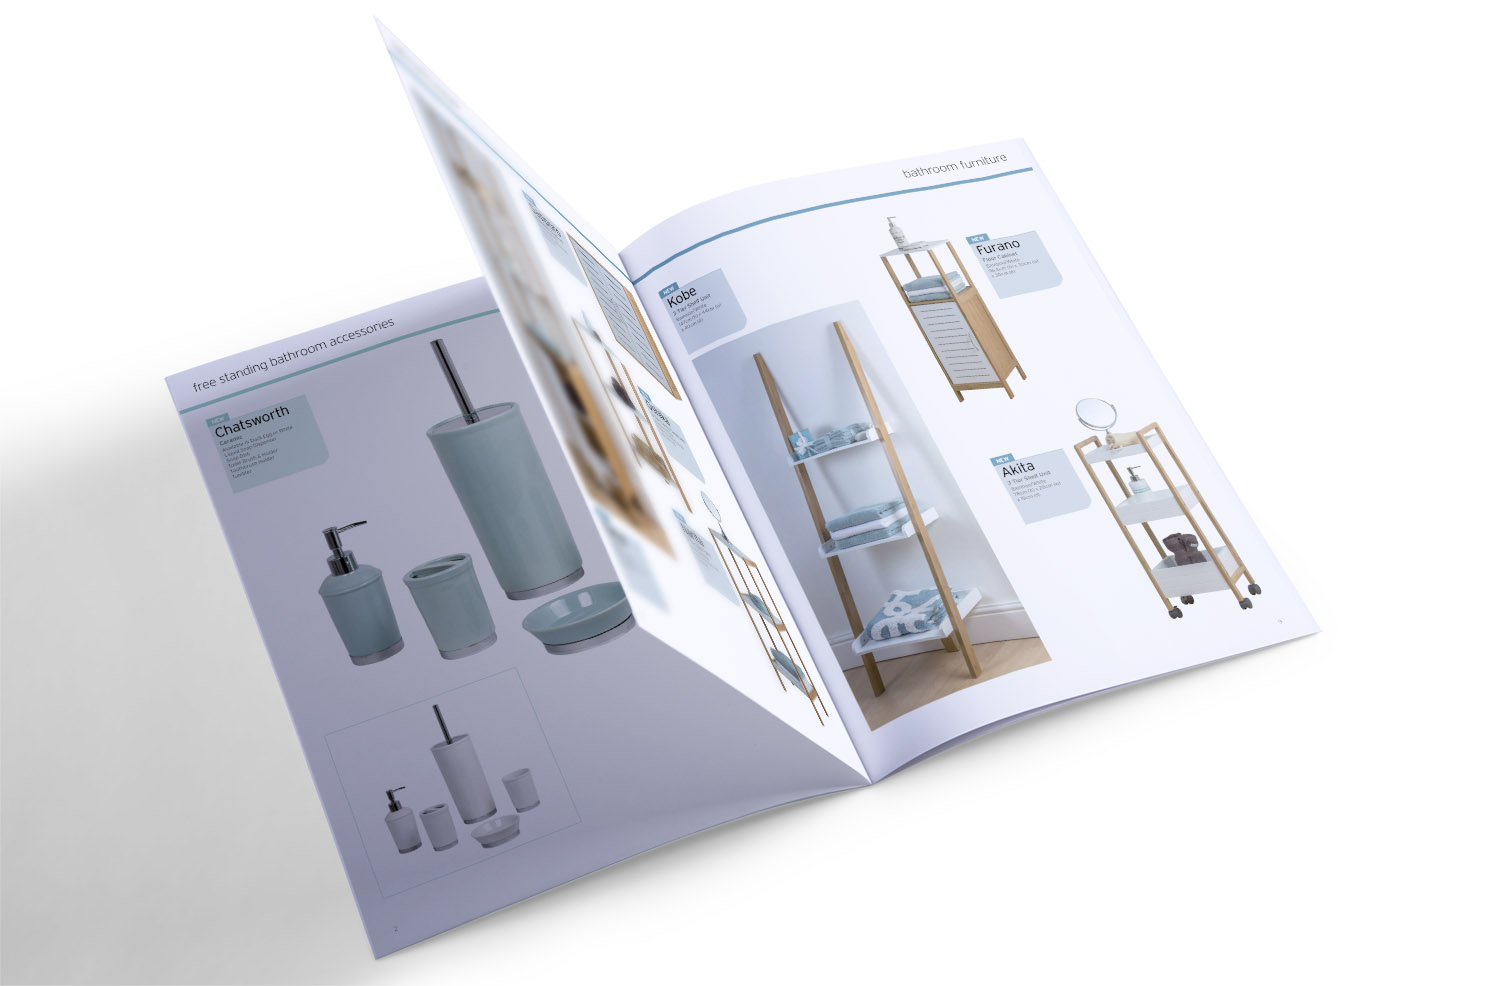 Showerdrape-Catalogue-Design-Supplement-Spread-1.jpg